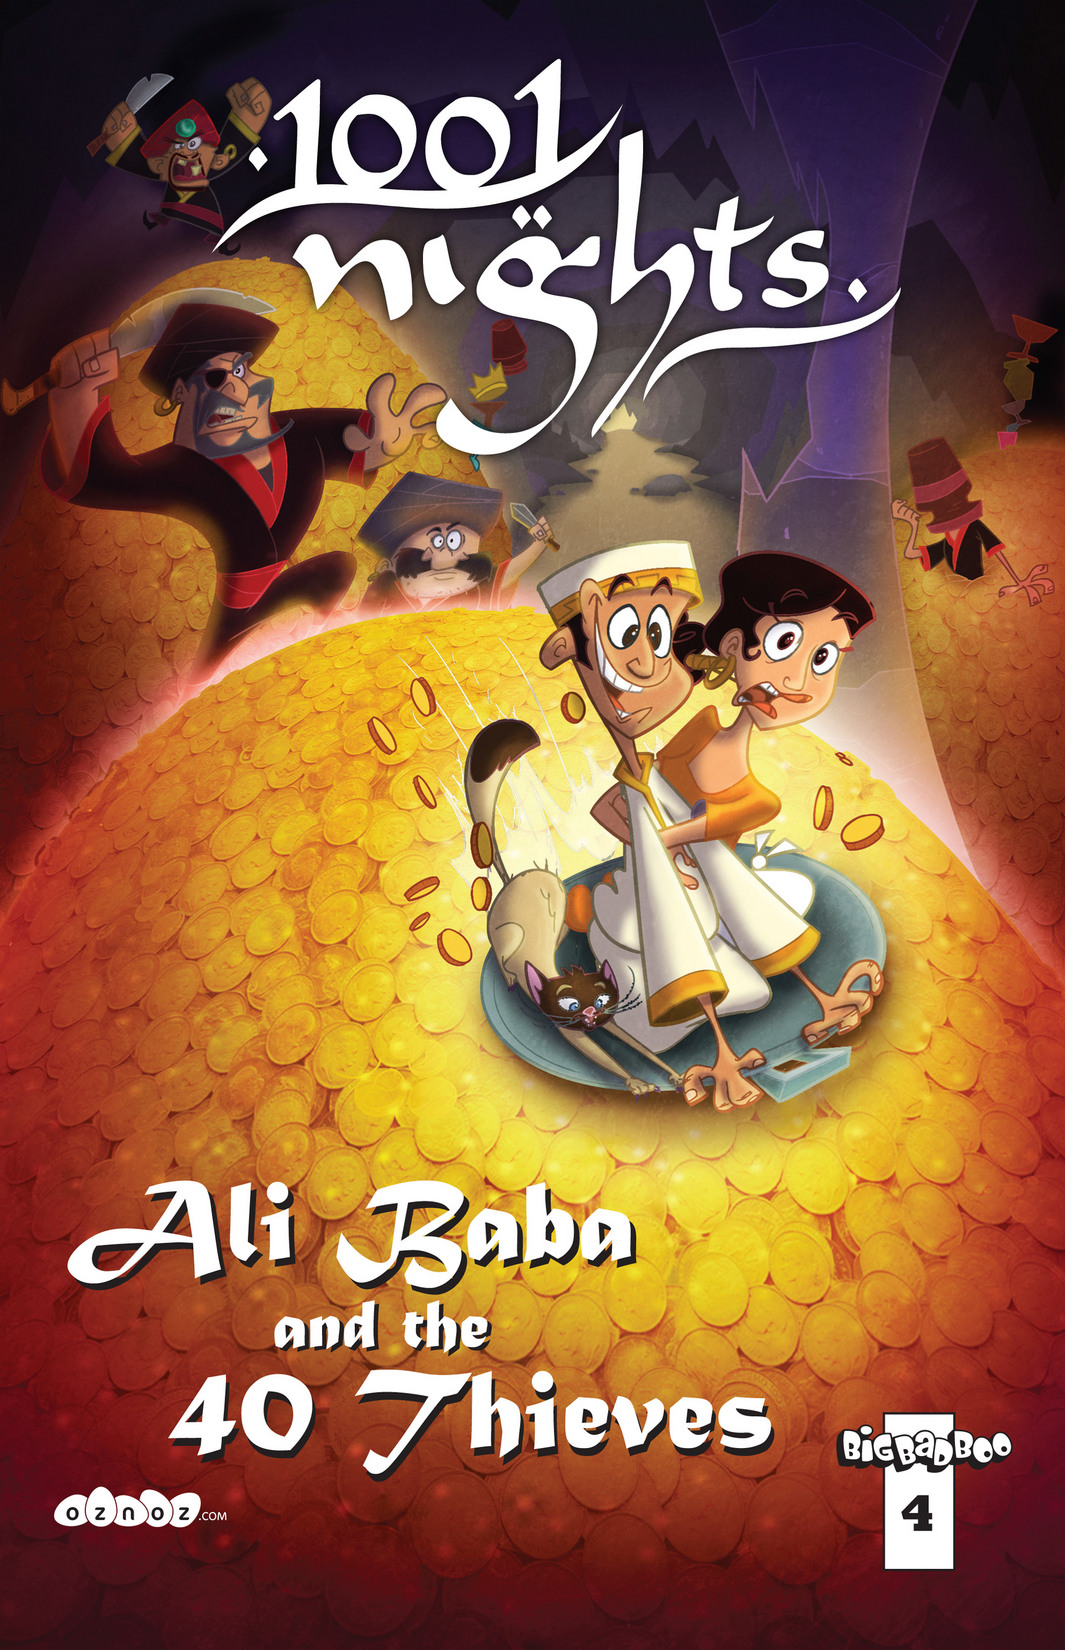 Read online 1001 Nights comic -  Issue #4 - 1